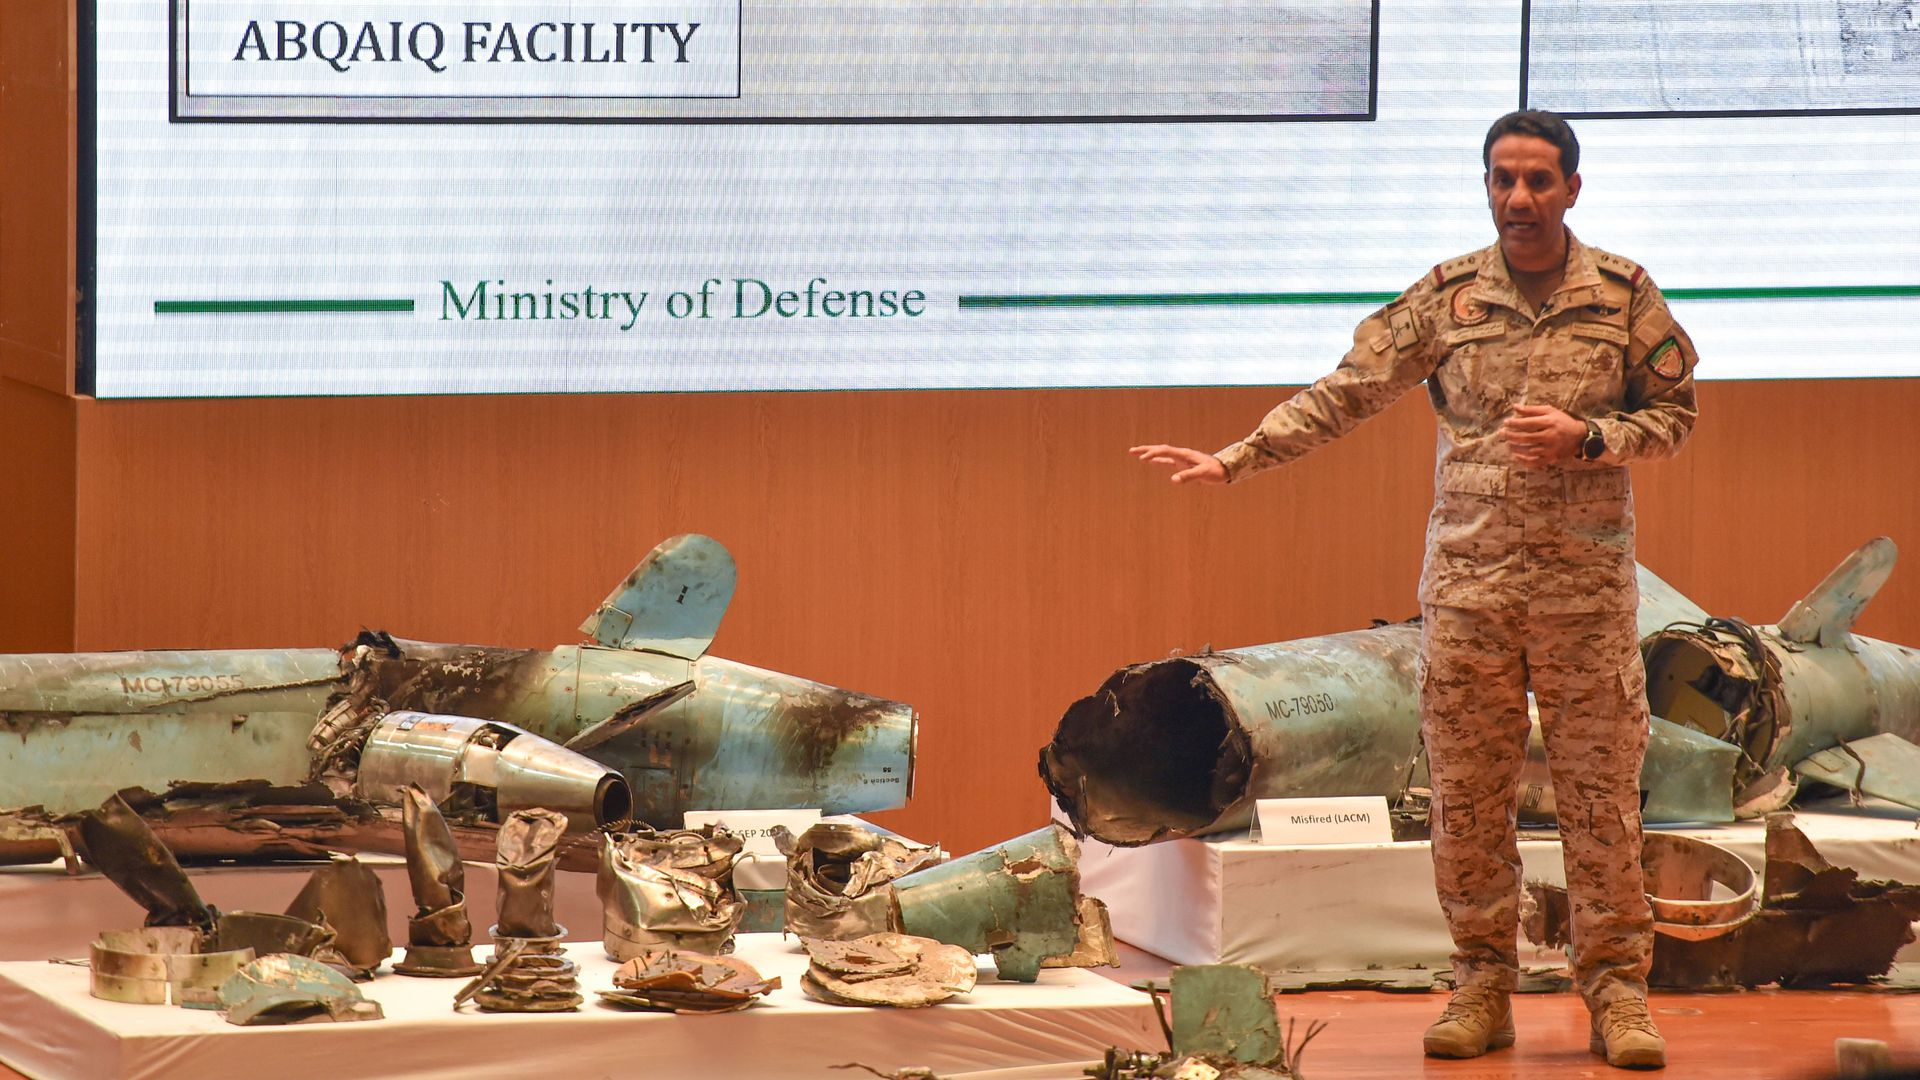 Saudi defense minister on stage with weapons remnants from the weekend's attack on its oil facilities